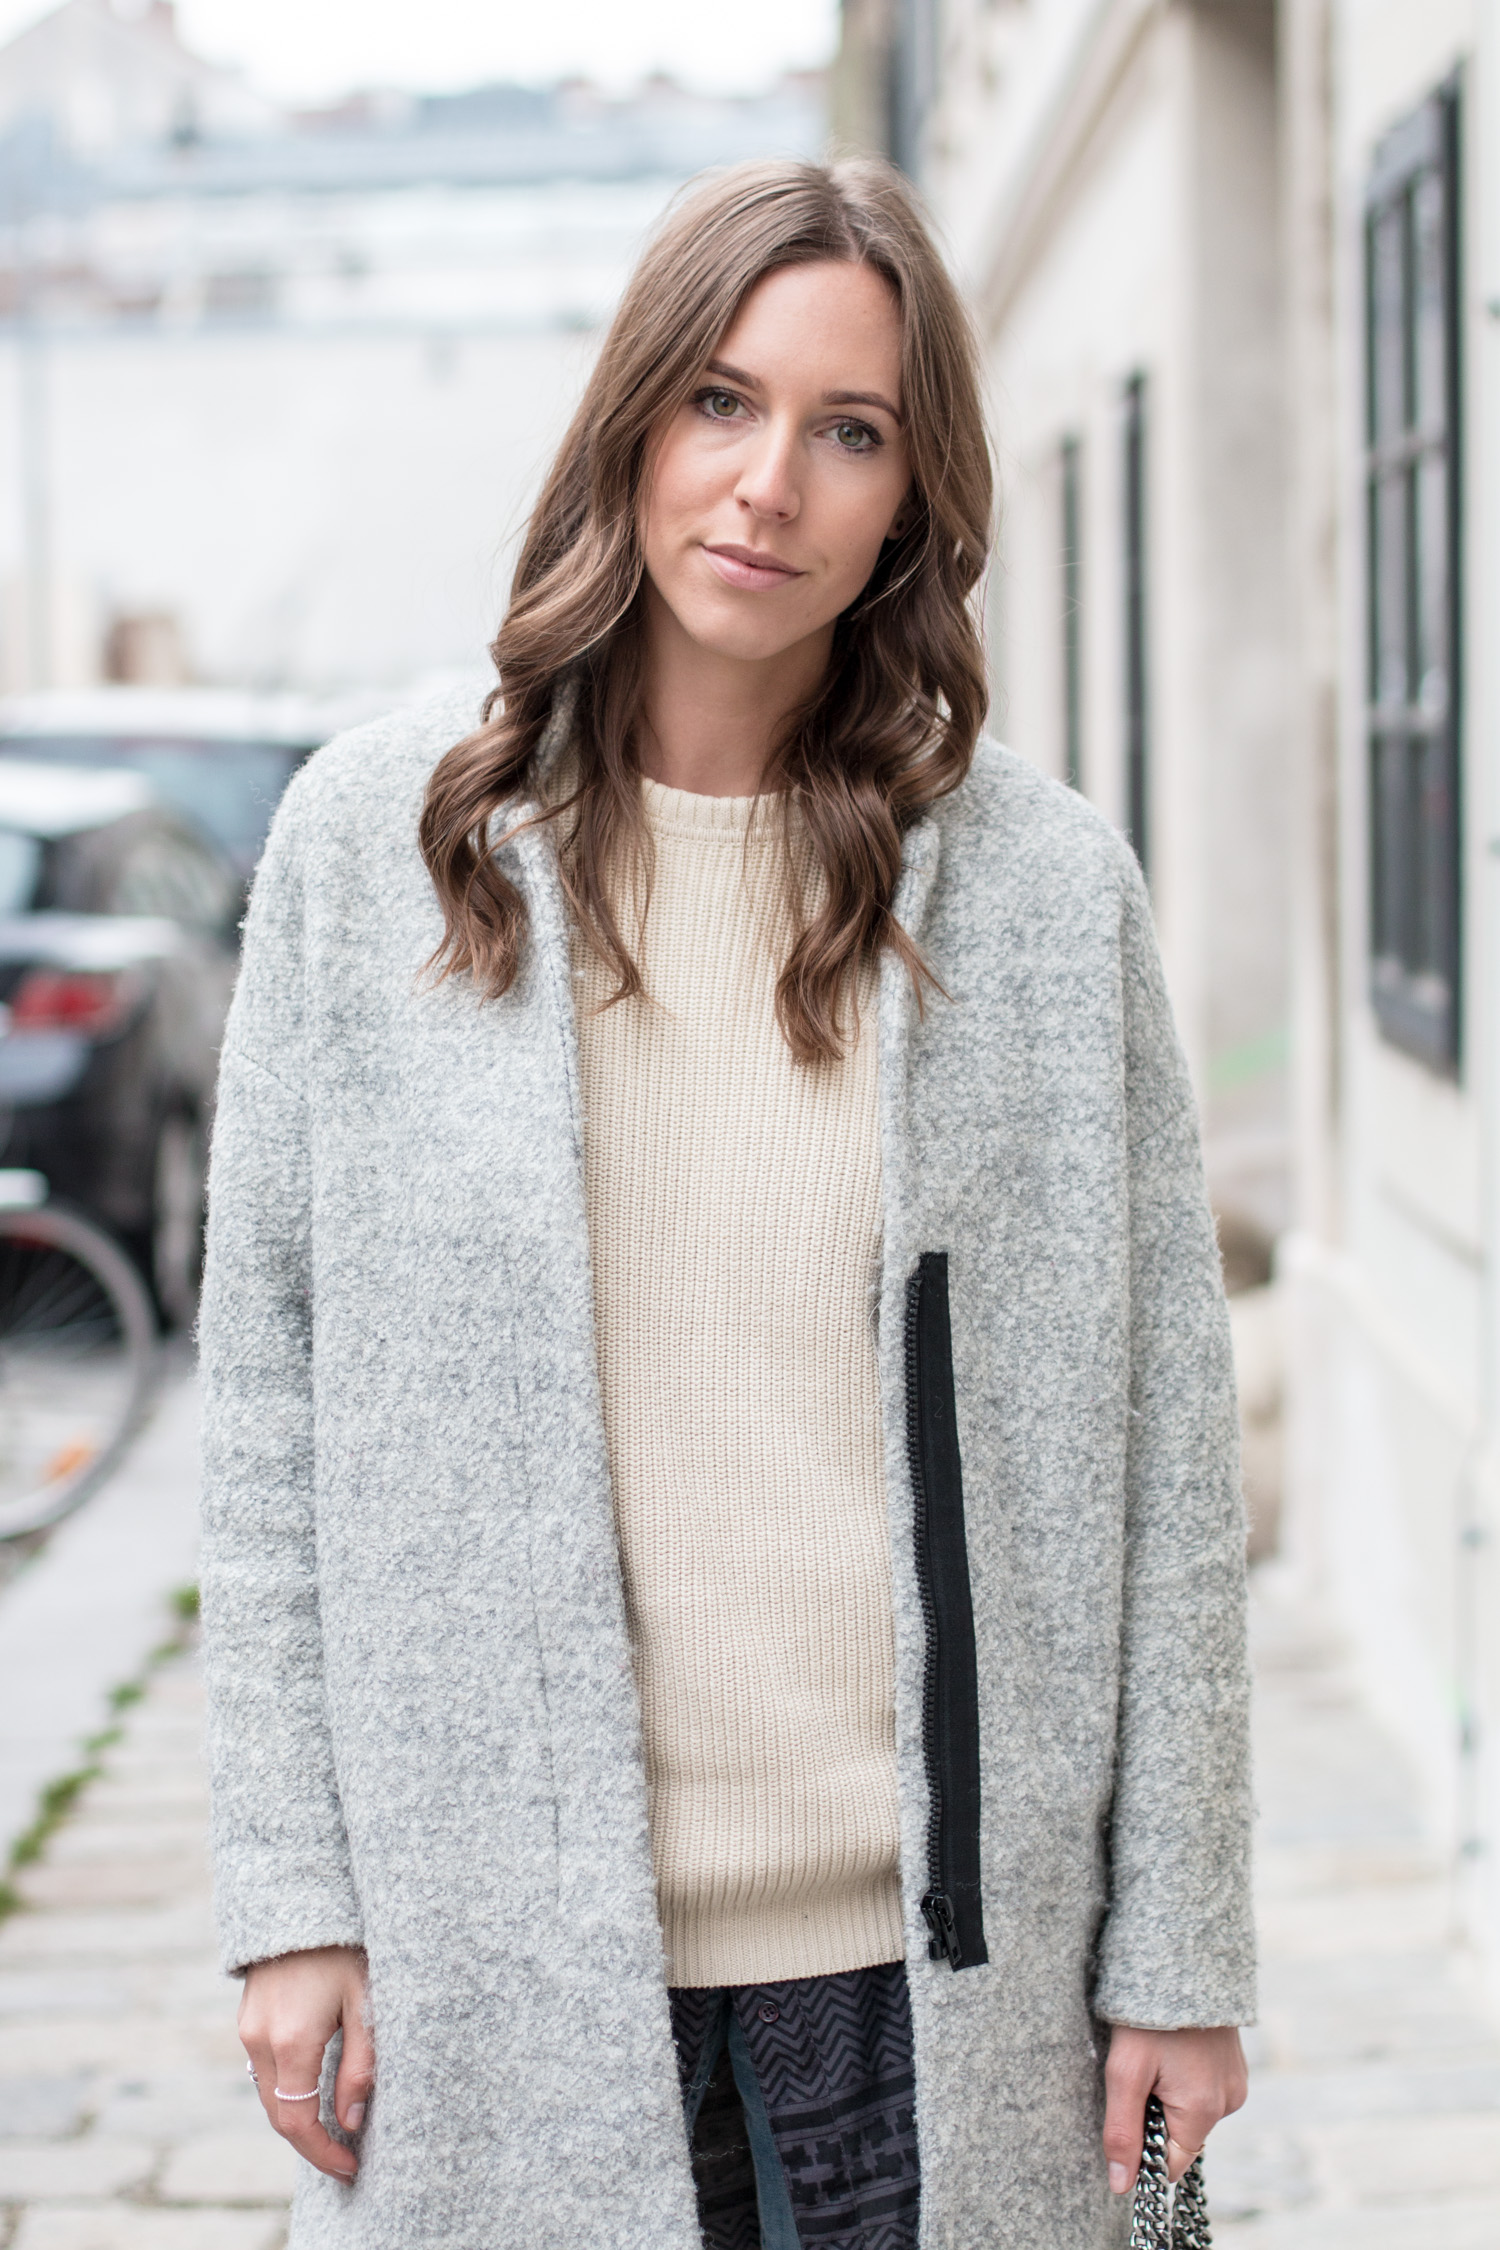 Knitwear for winter | The Daily Dose